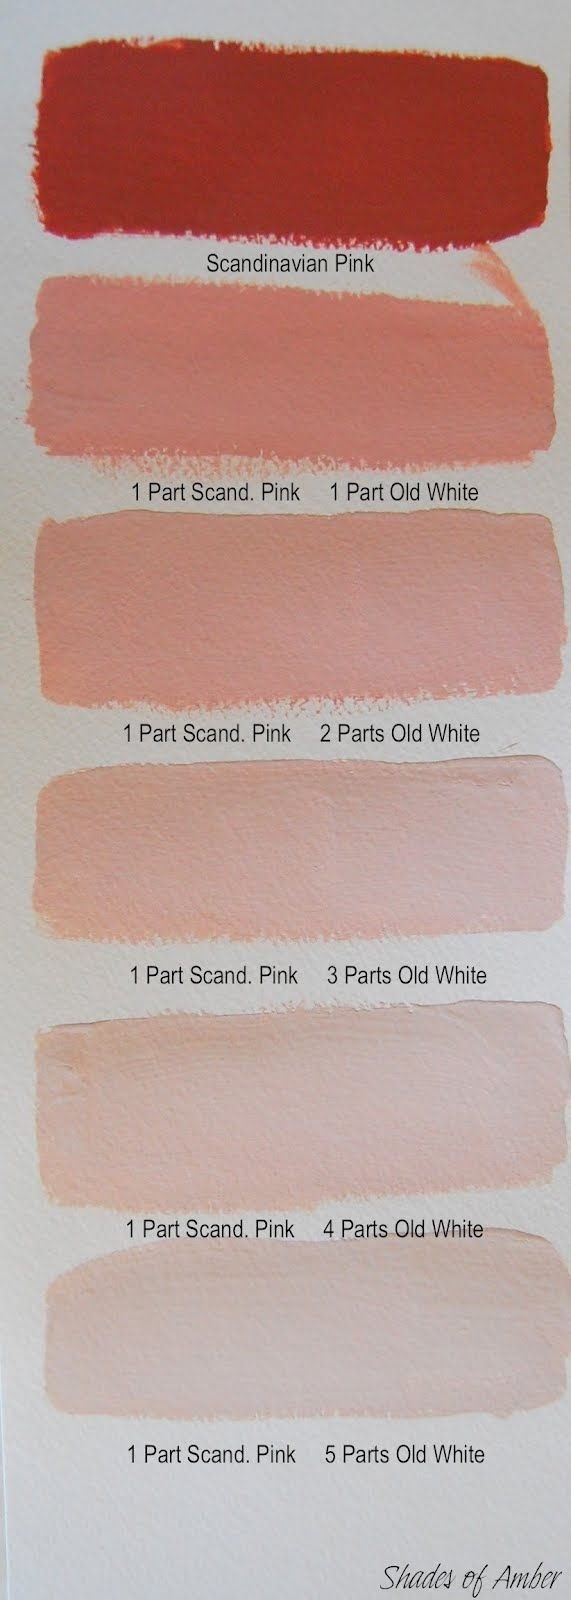 Shades of Amber:Chalk Paint® decorative paint by Annie Sloan  Color Theory - Scandinavian Pink